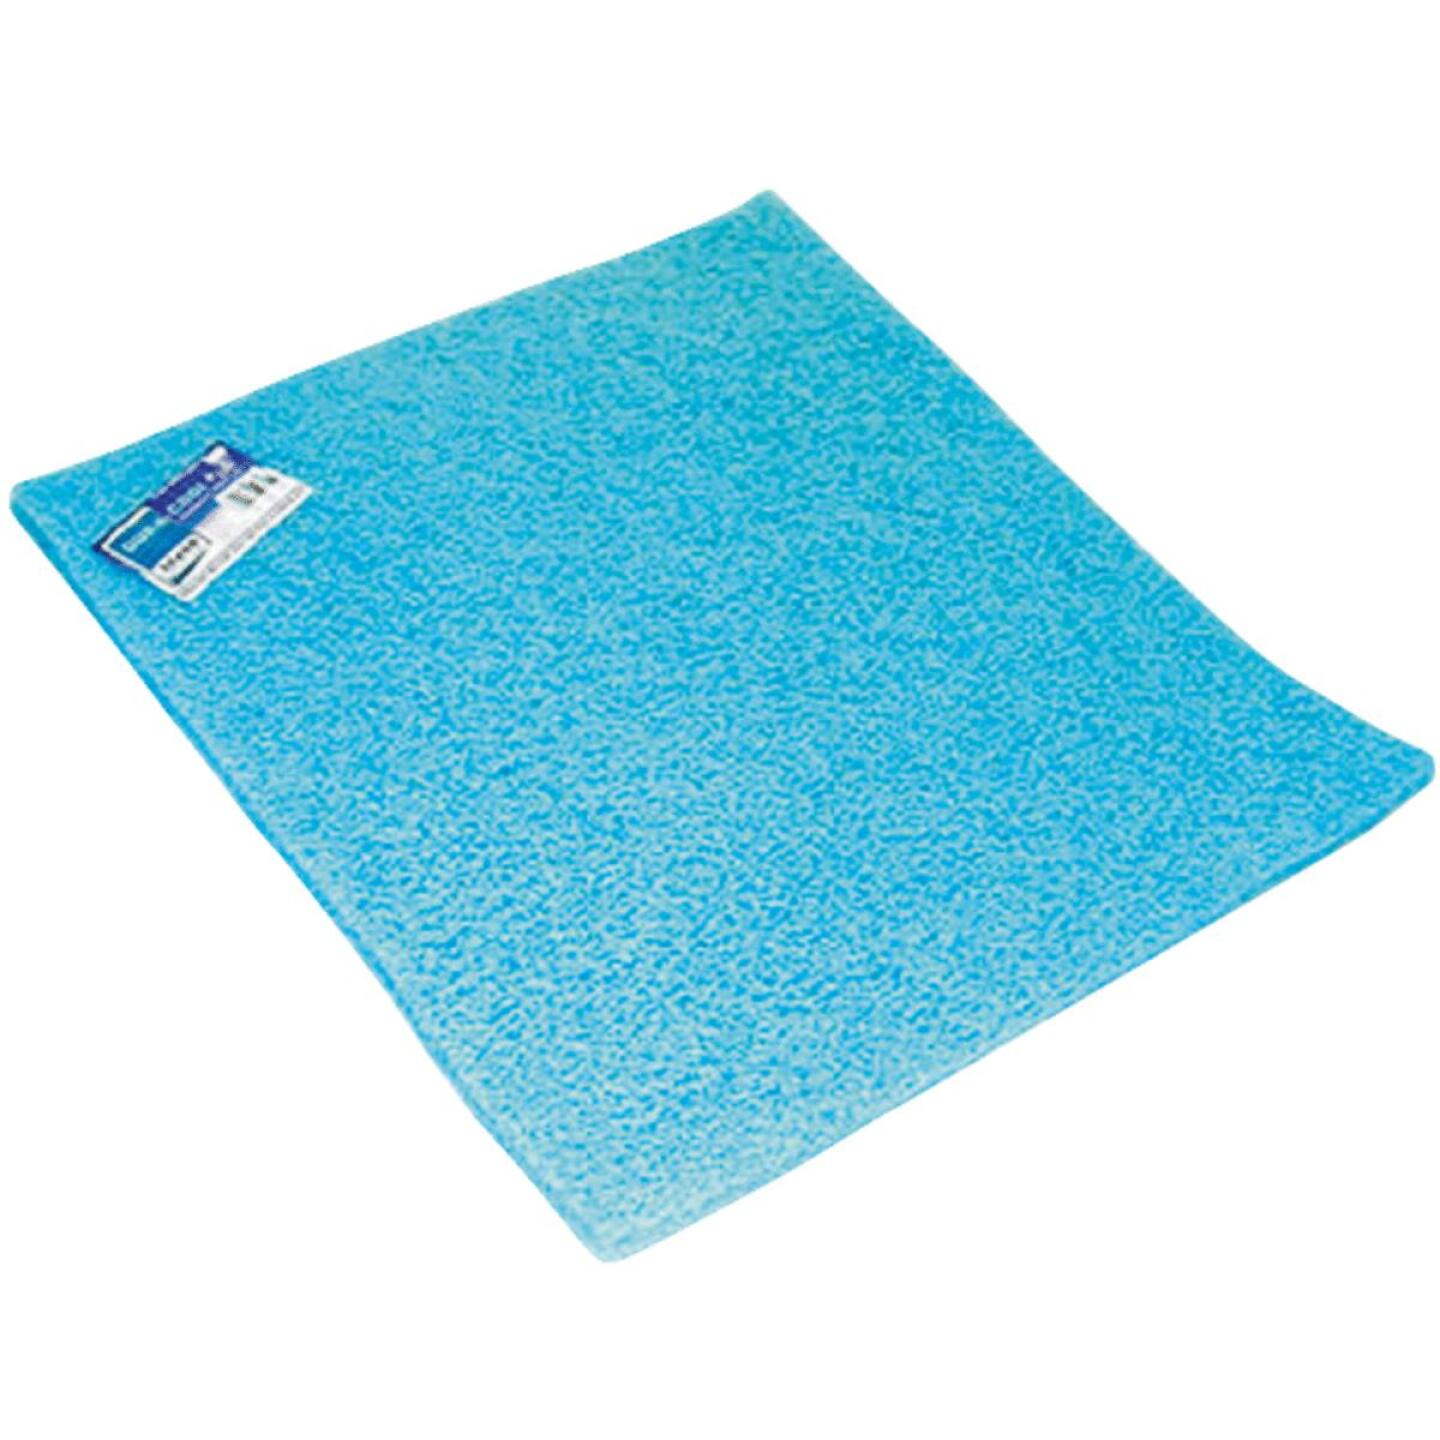 Dial Dura-Cool 33 In. x 160 In. Foamed Polyester Evaporative Cooler Pad Roll Image 1